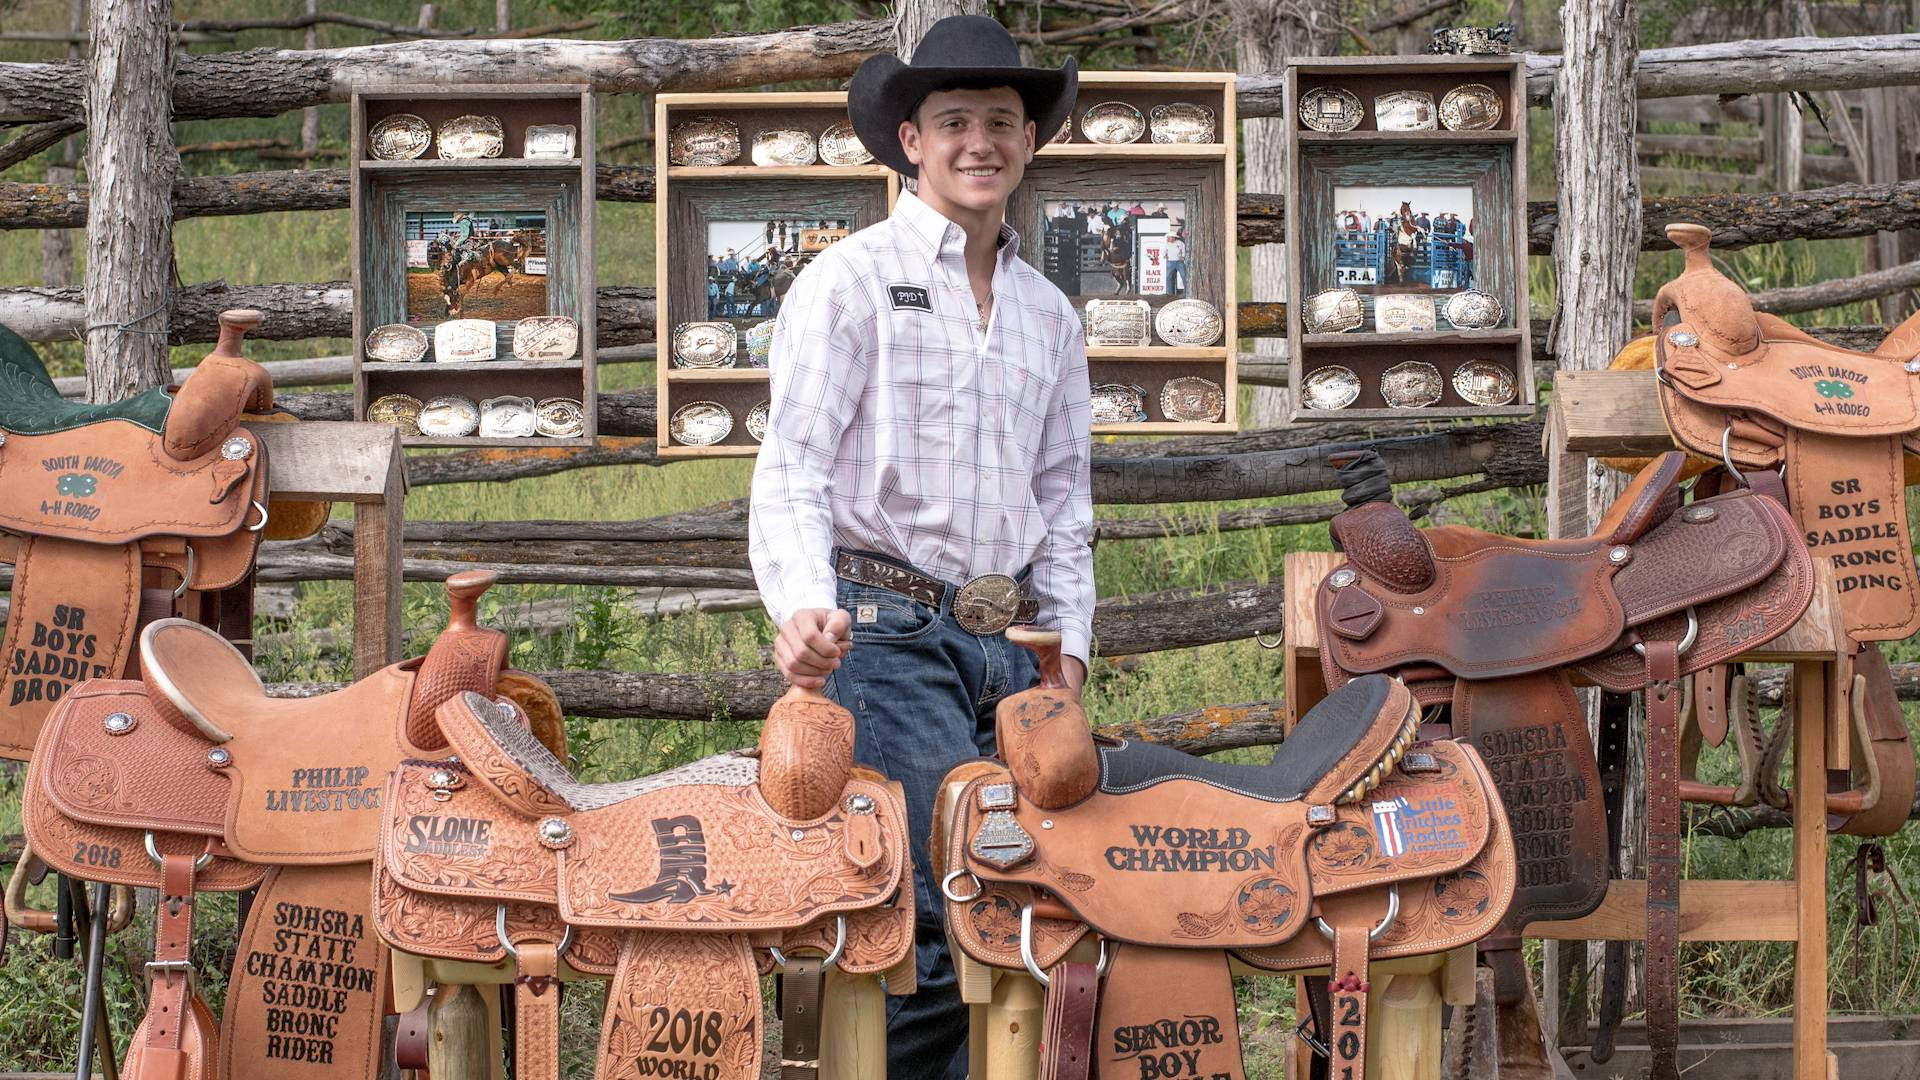 Cash Wilson with his saddles and buckles